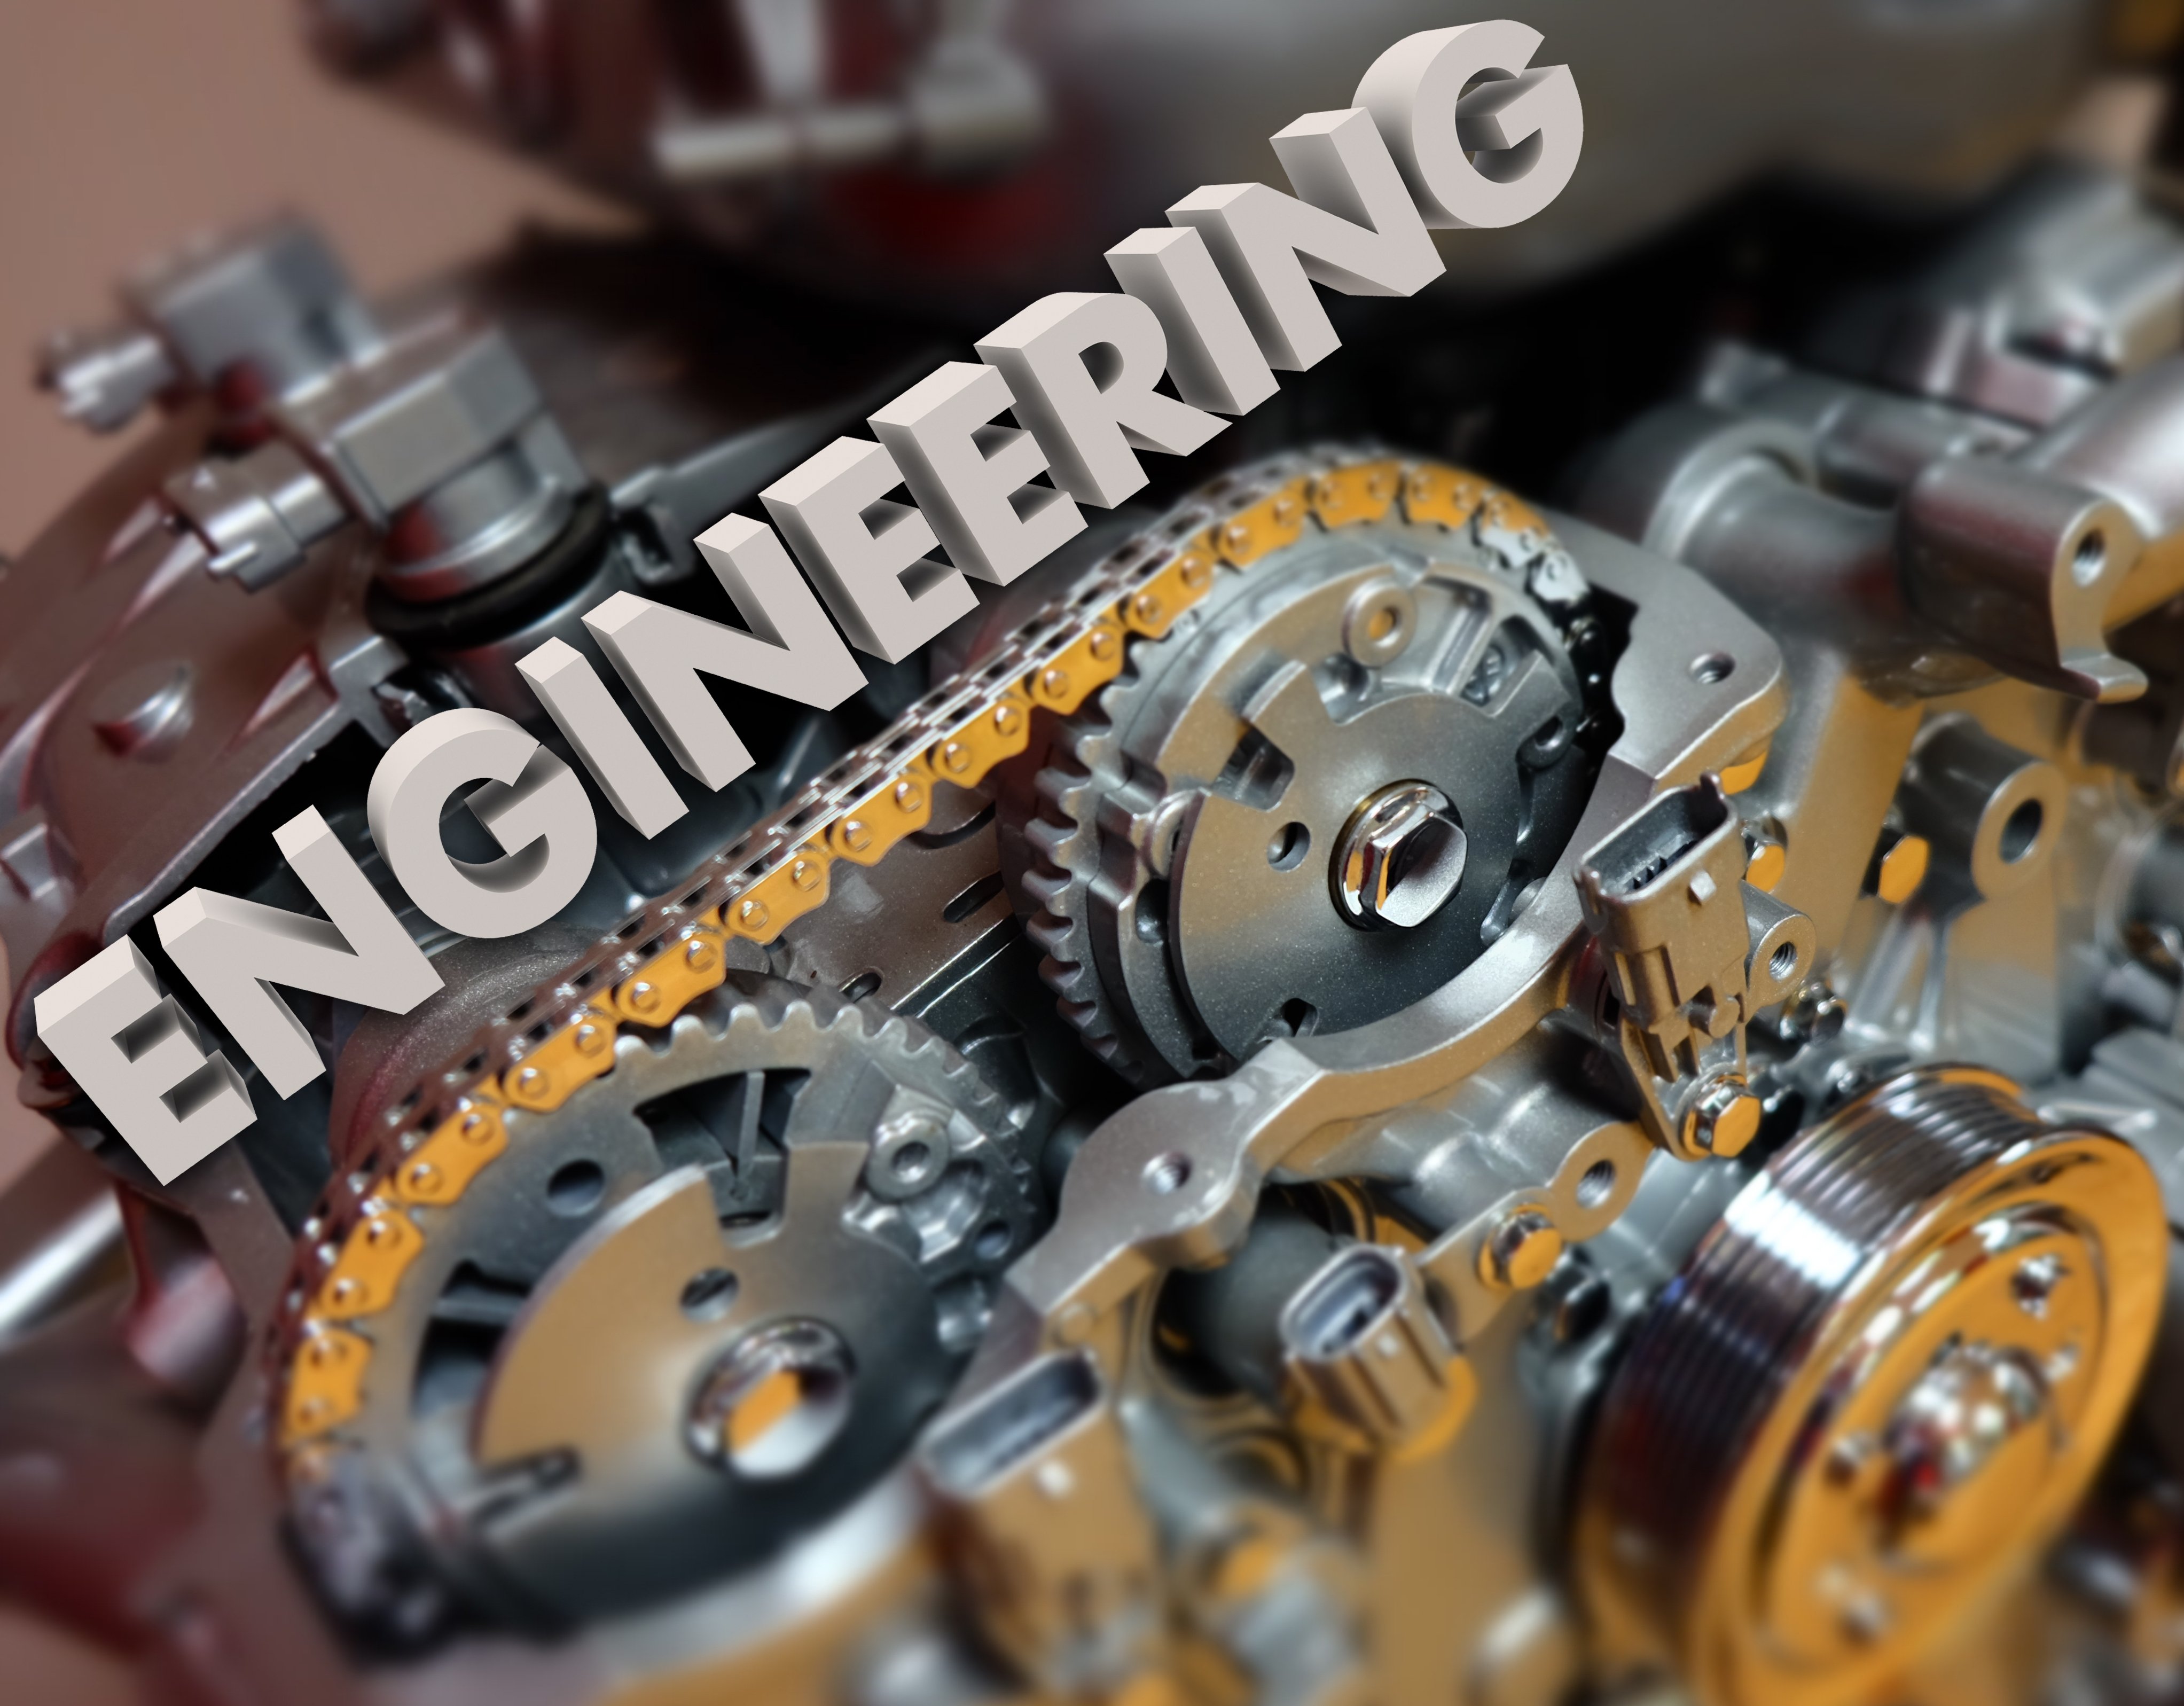 Engineering word in 3d white letters on